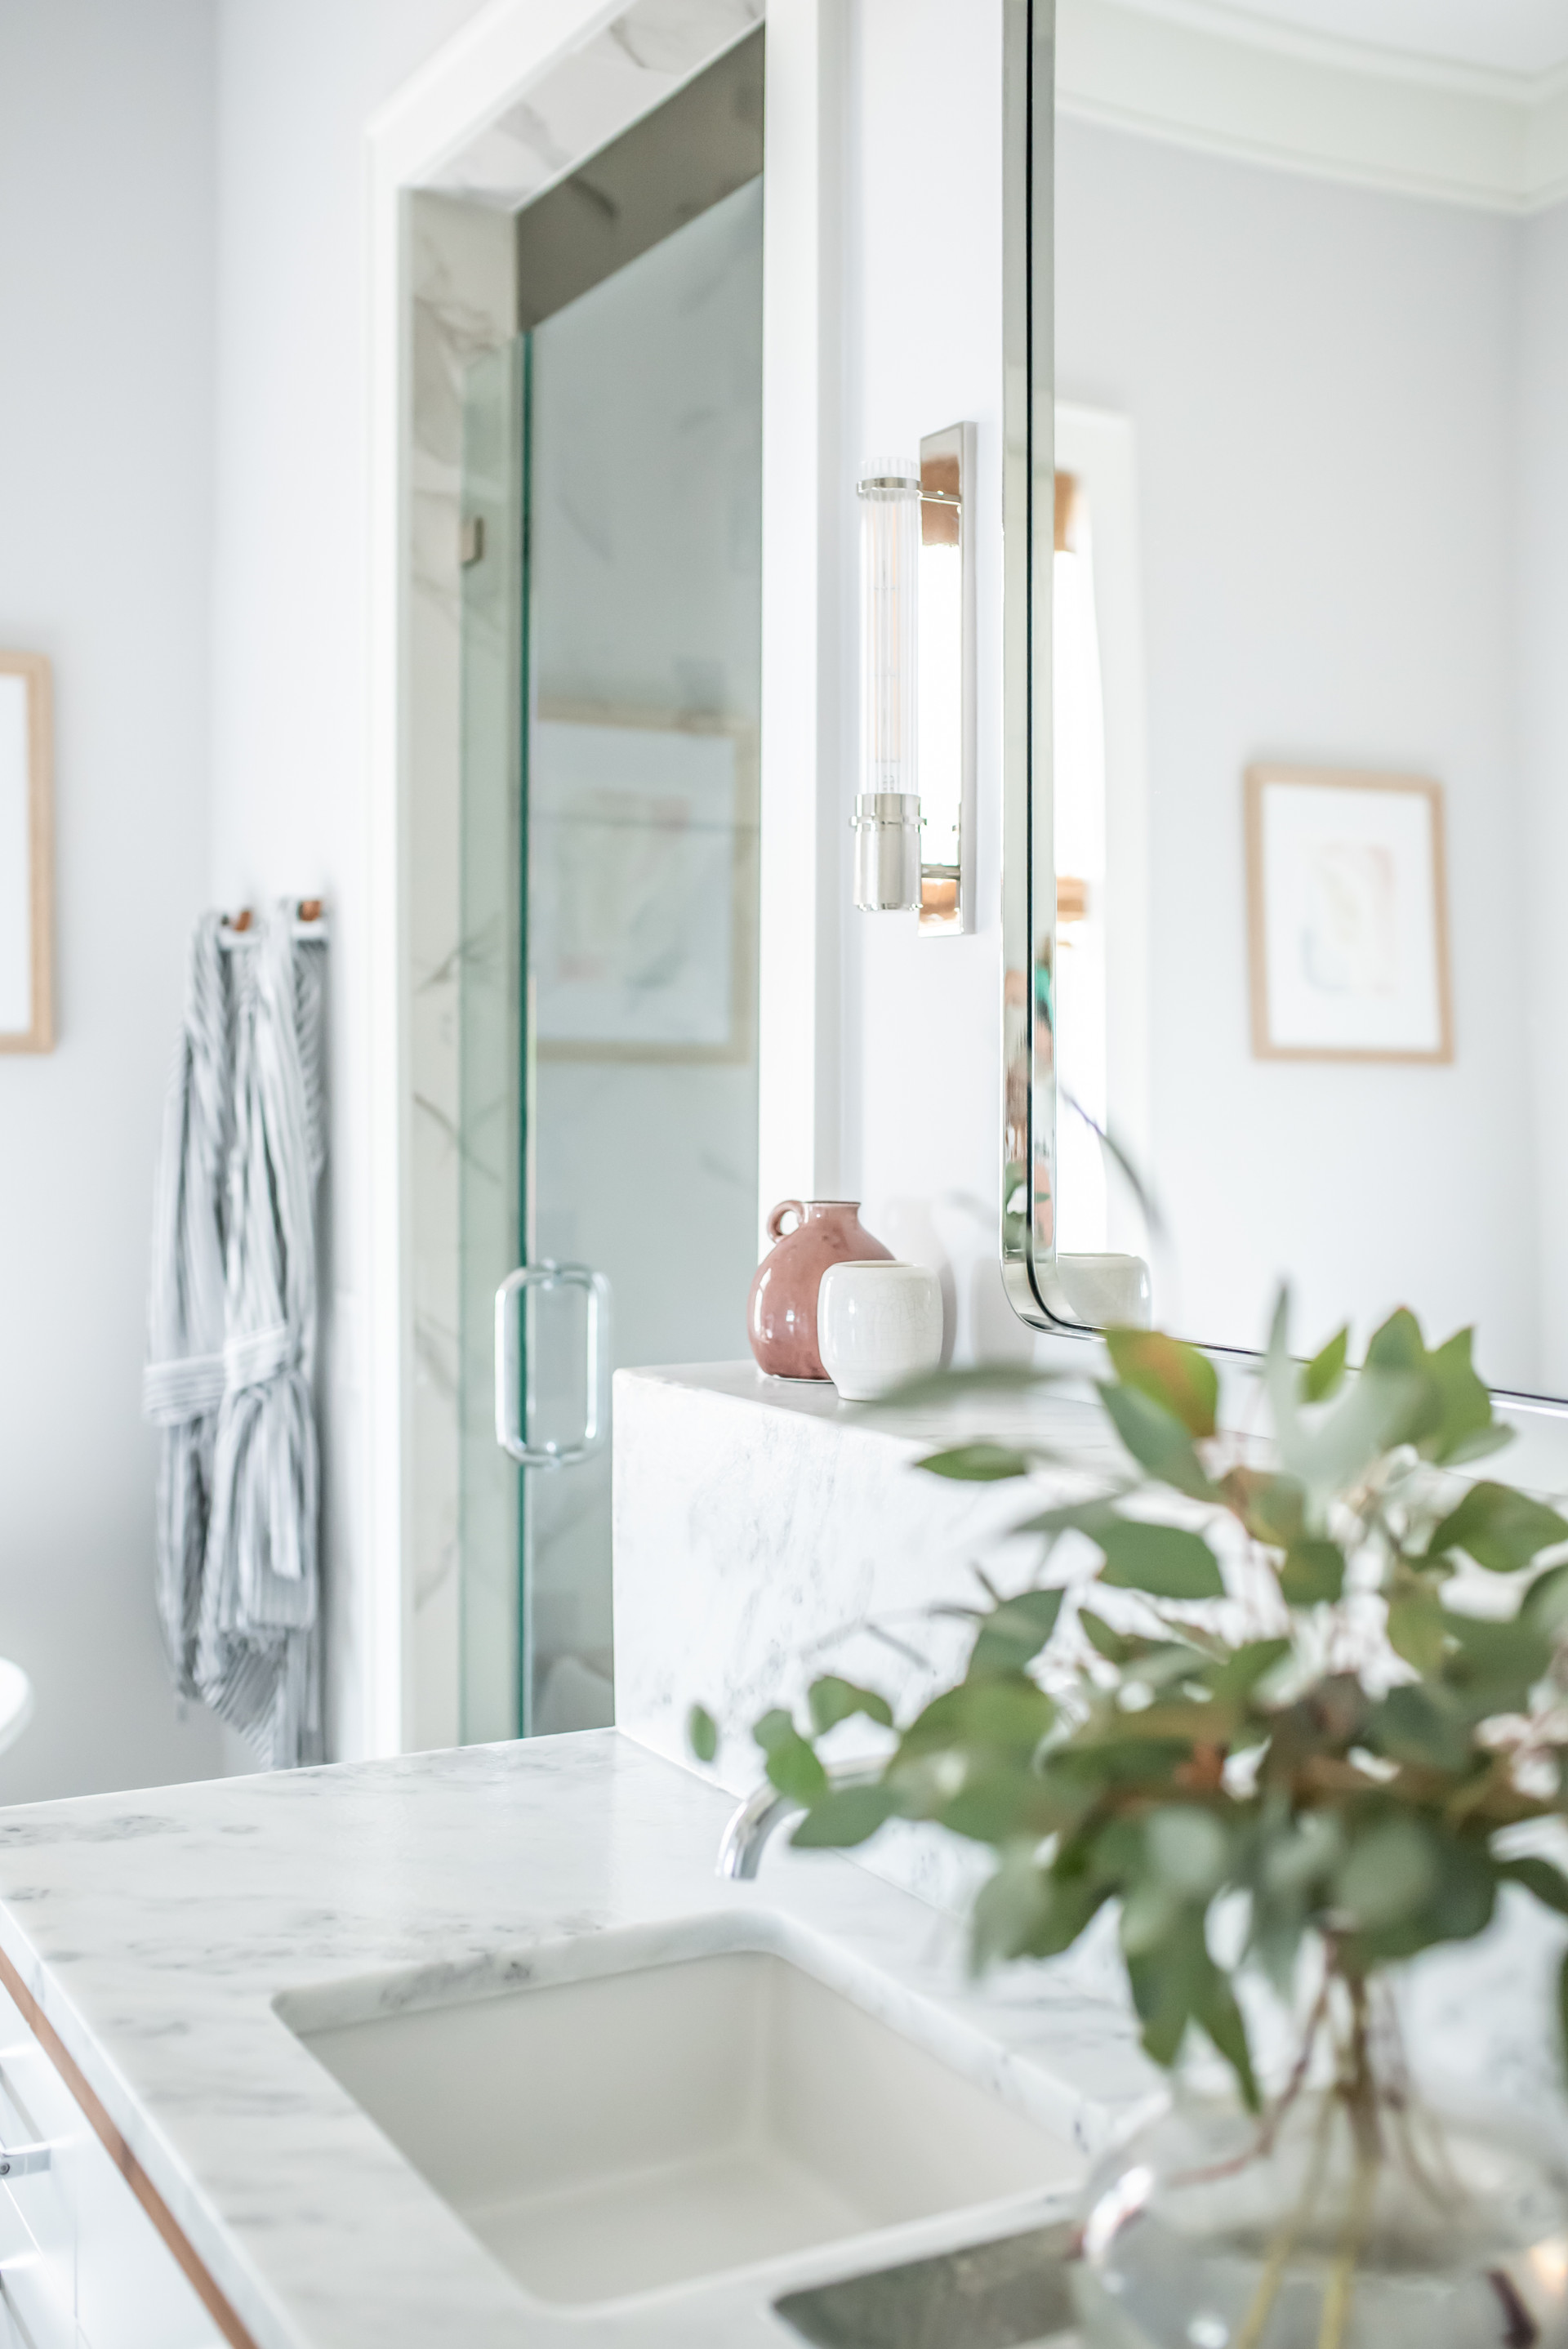 ADC-May1-2019-Master-Bathroom-8.jpg